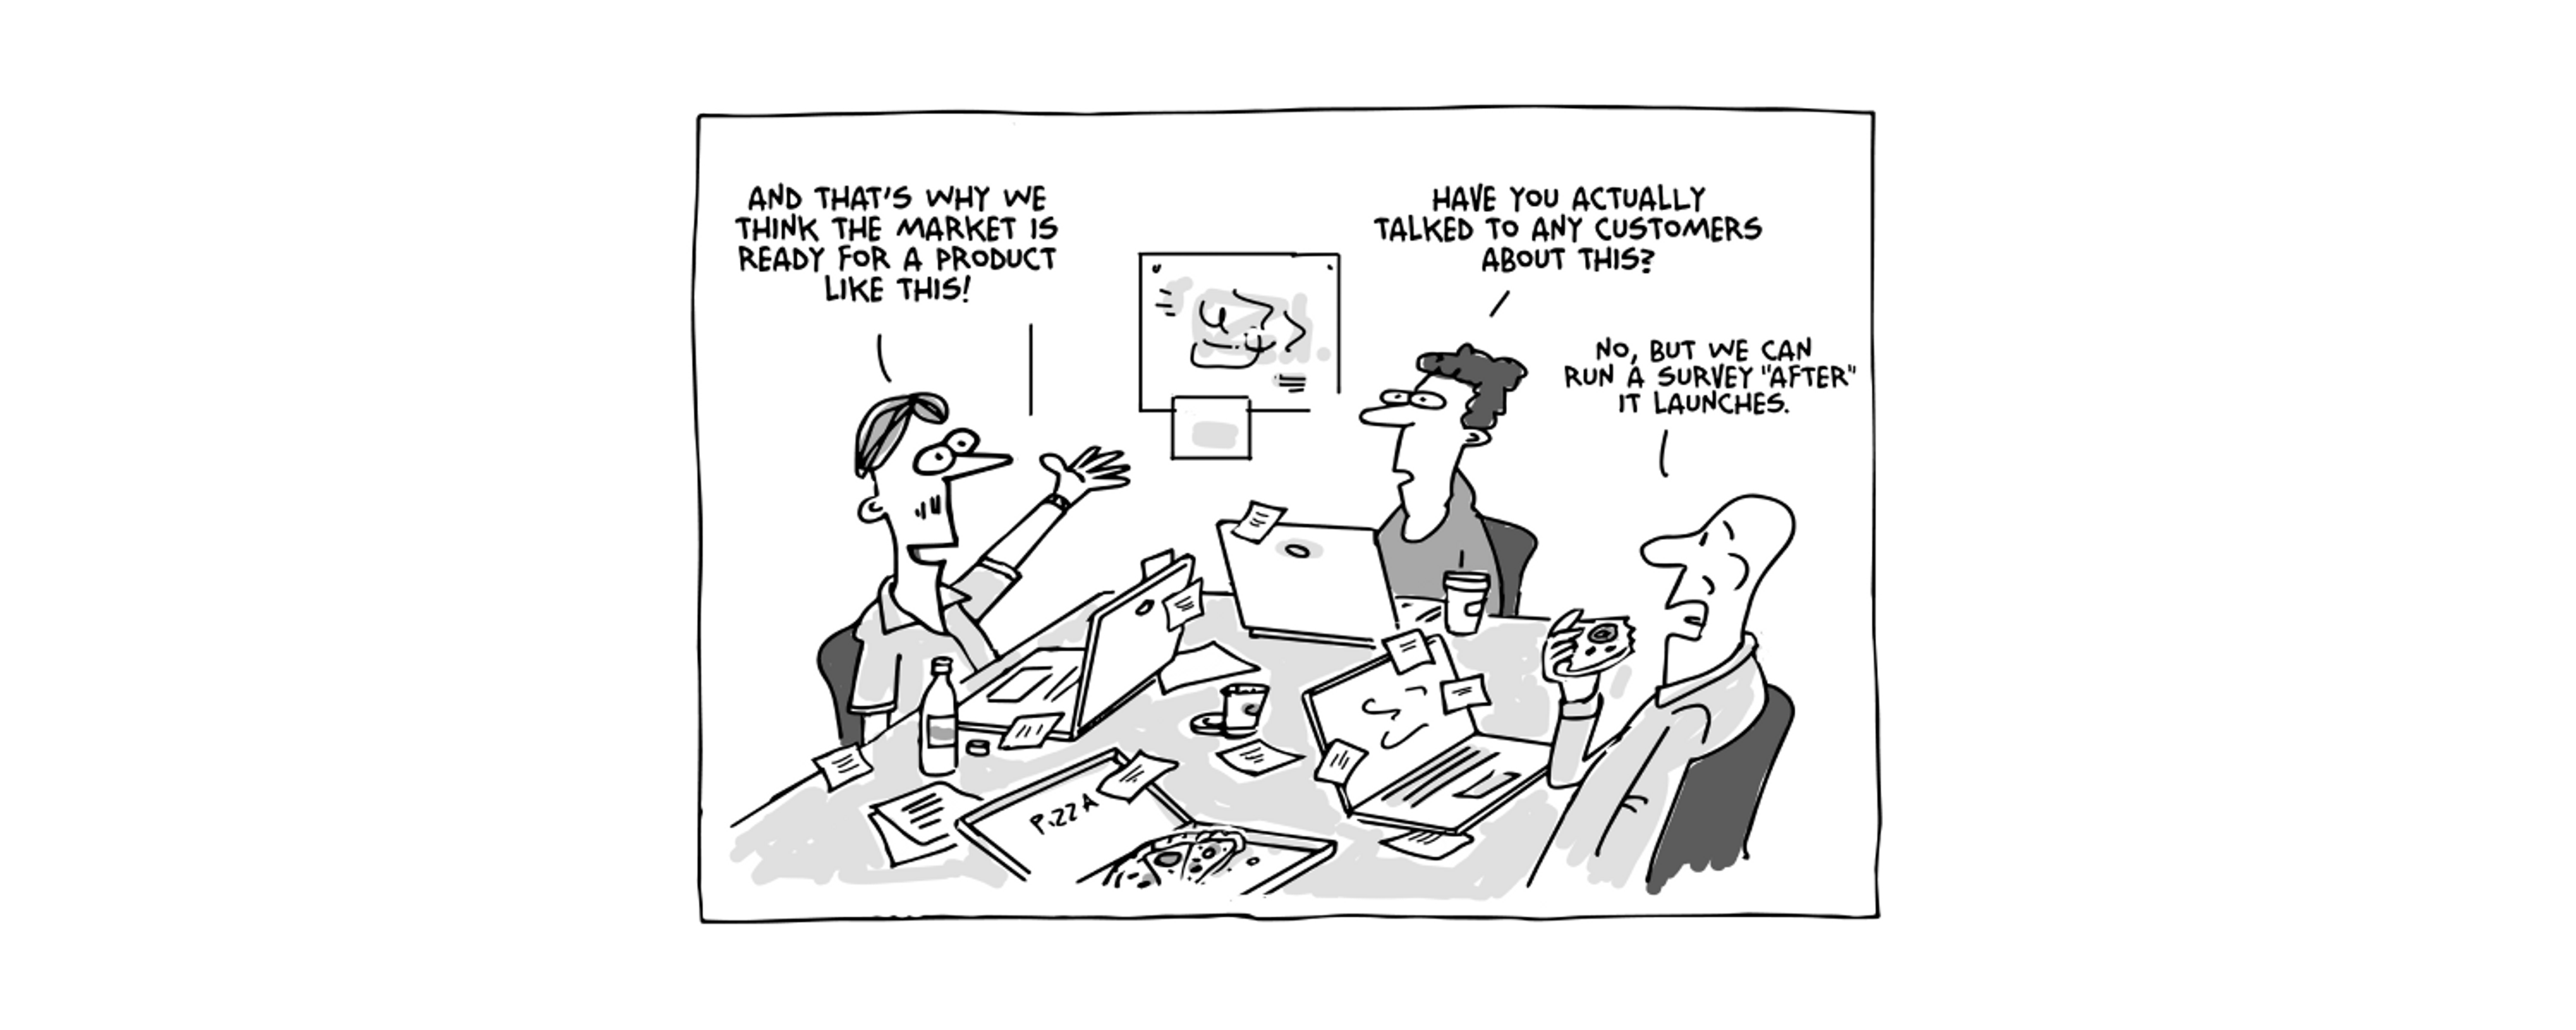 Funny illustration of people in a boardroom